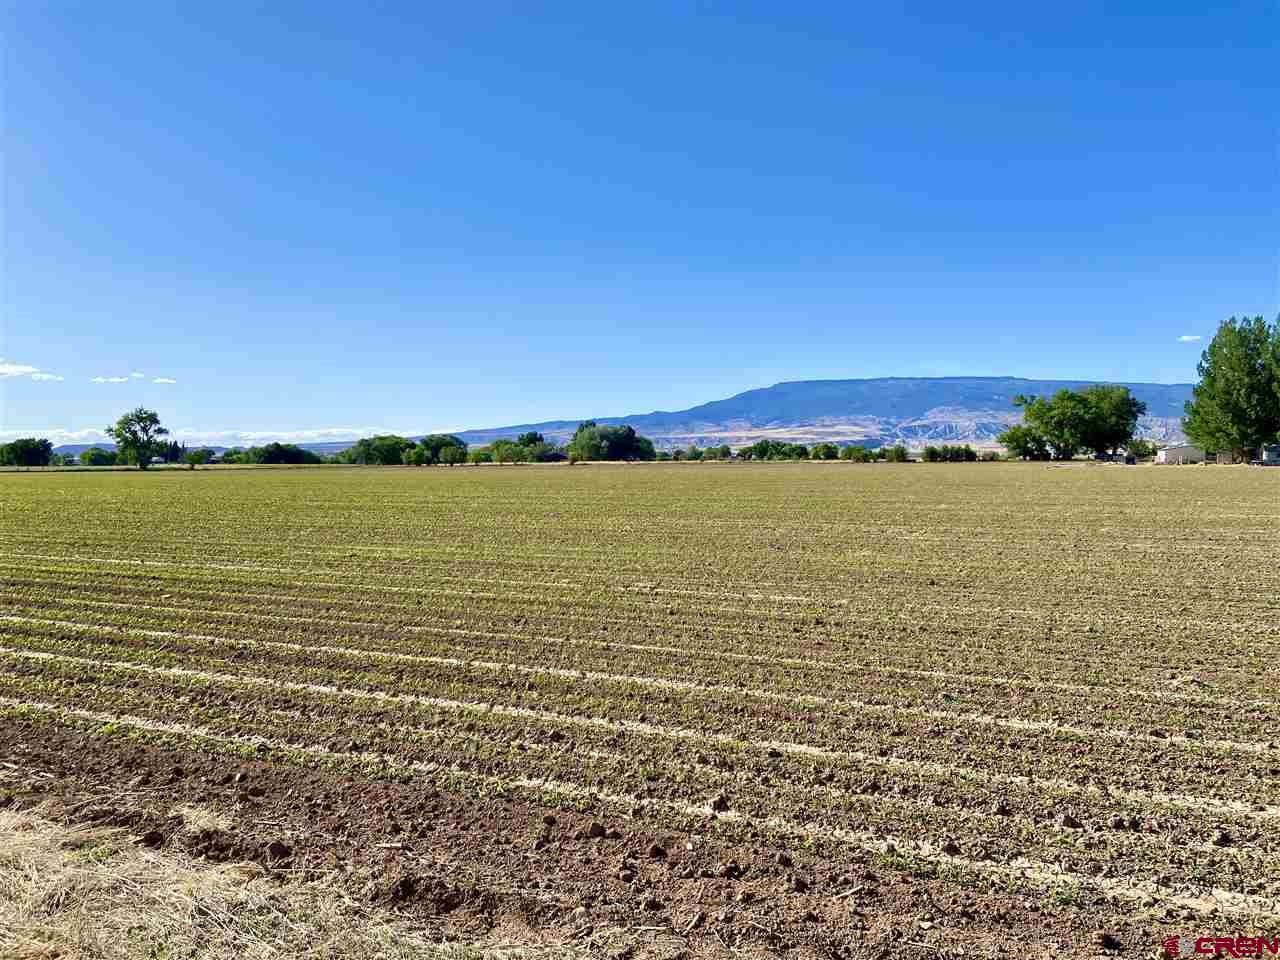 Fantastic California Mesa farm ground! This flat, highly productive acreage has been farmed historically for decades. With beautiful fertile soil, ample irrigation water (34 shares of UVWUA) and gorgeous views in each direction, this parcel is a perfect place to set down some roots. The property is approximately 8 minutes from town, and sits off of a paved county road. Utilities are nearby if one desires to also build a home, shop, etc. Don't let this one pass you by!